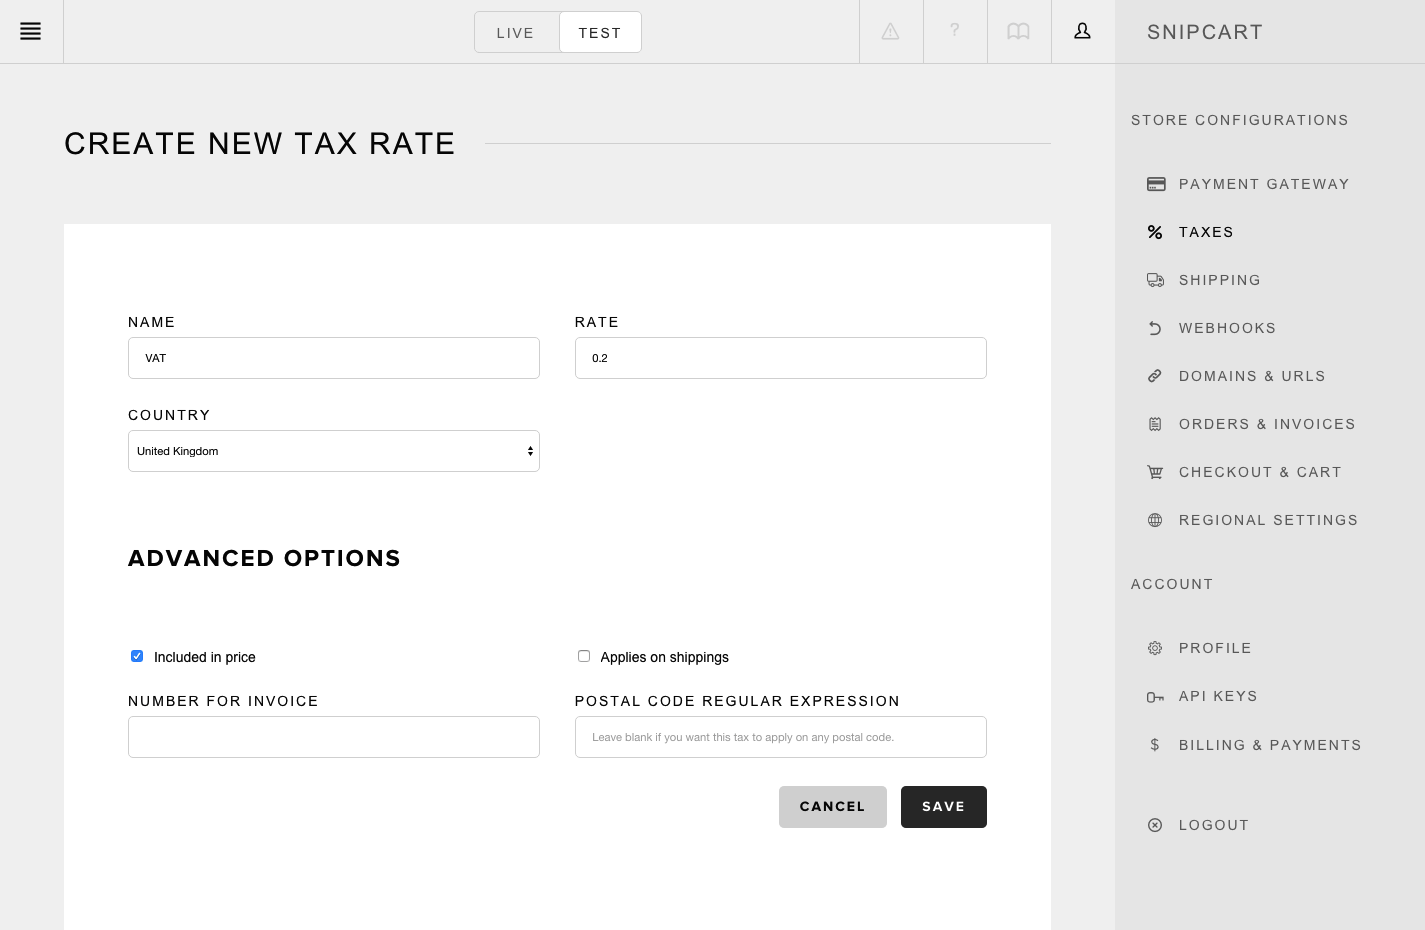 snipcart-docs-dashboard-create-tax